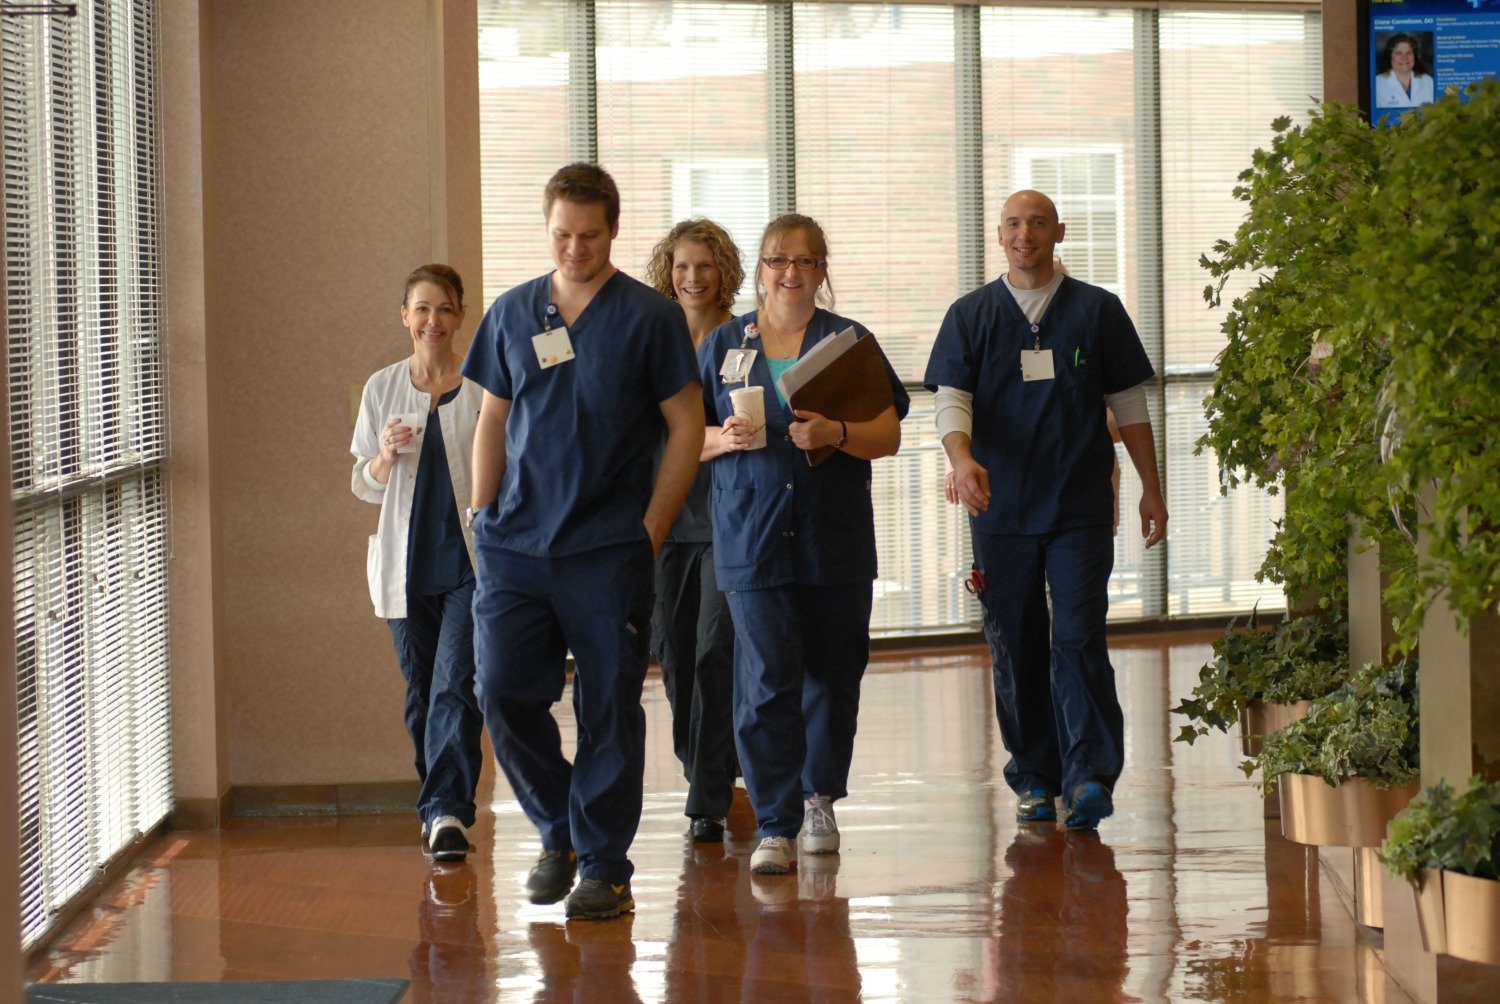 CoxHealth employees walk down a hall.